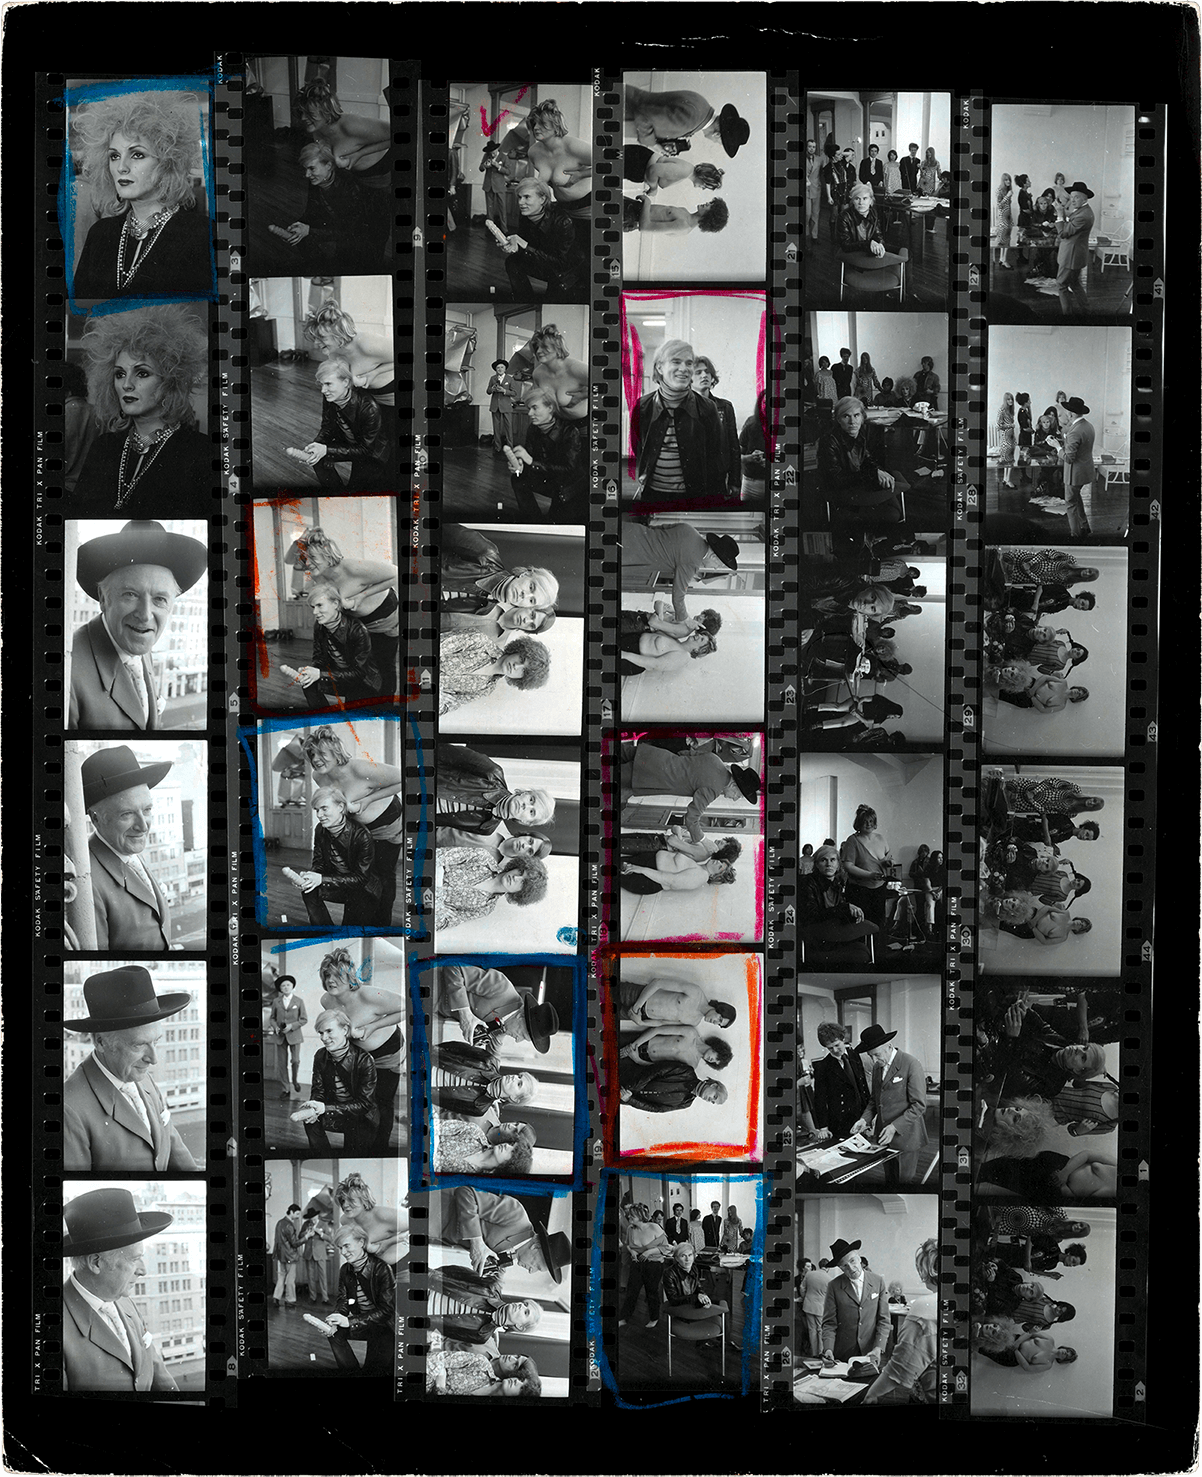 Andy Warhol & Factory - Contact Sheet